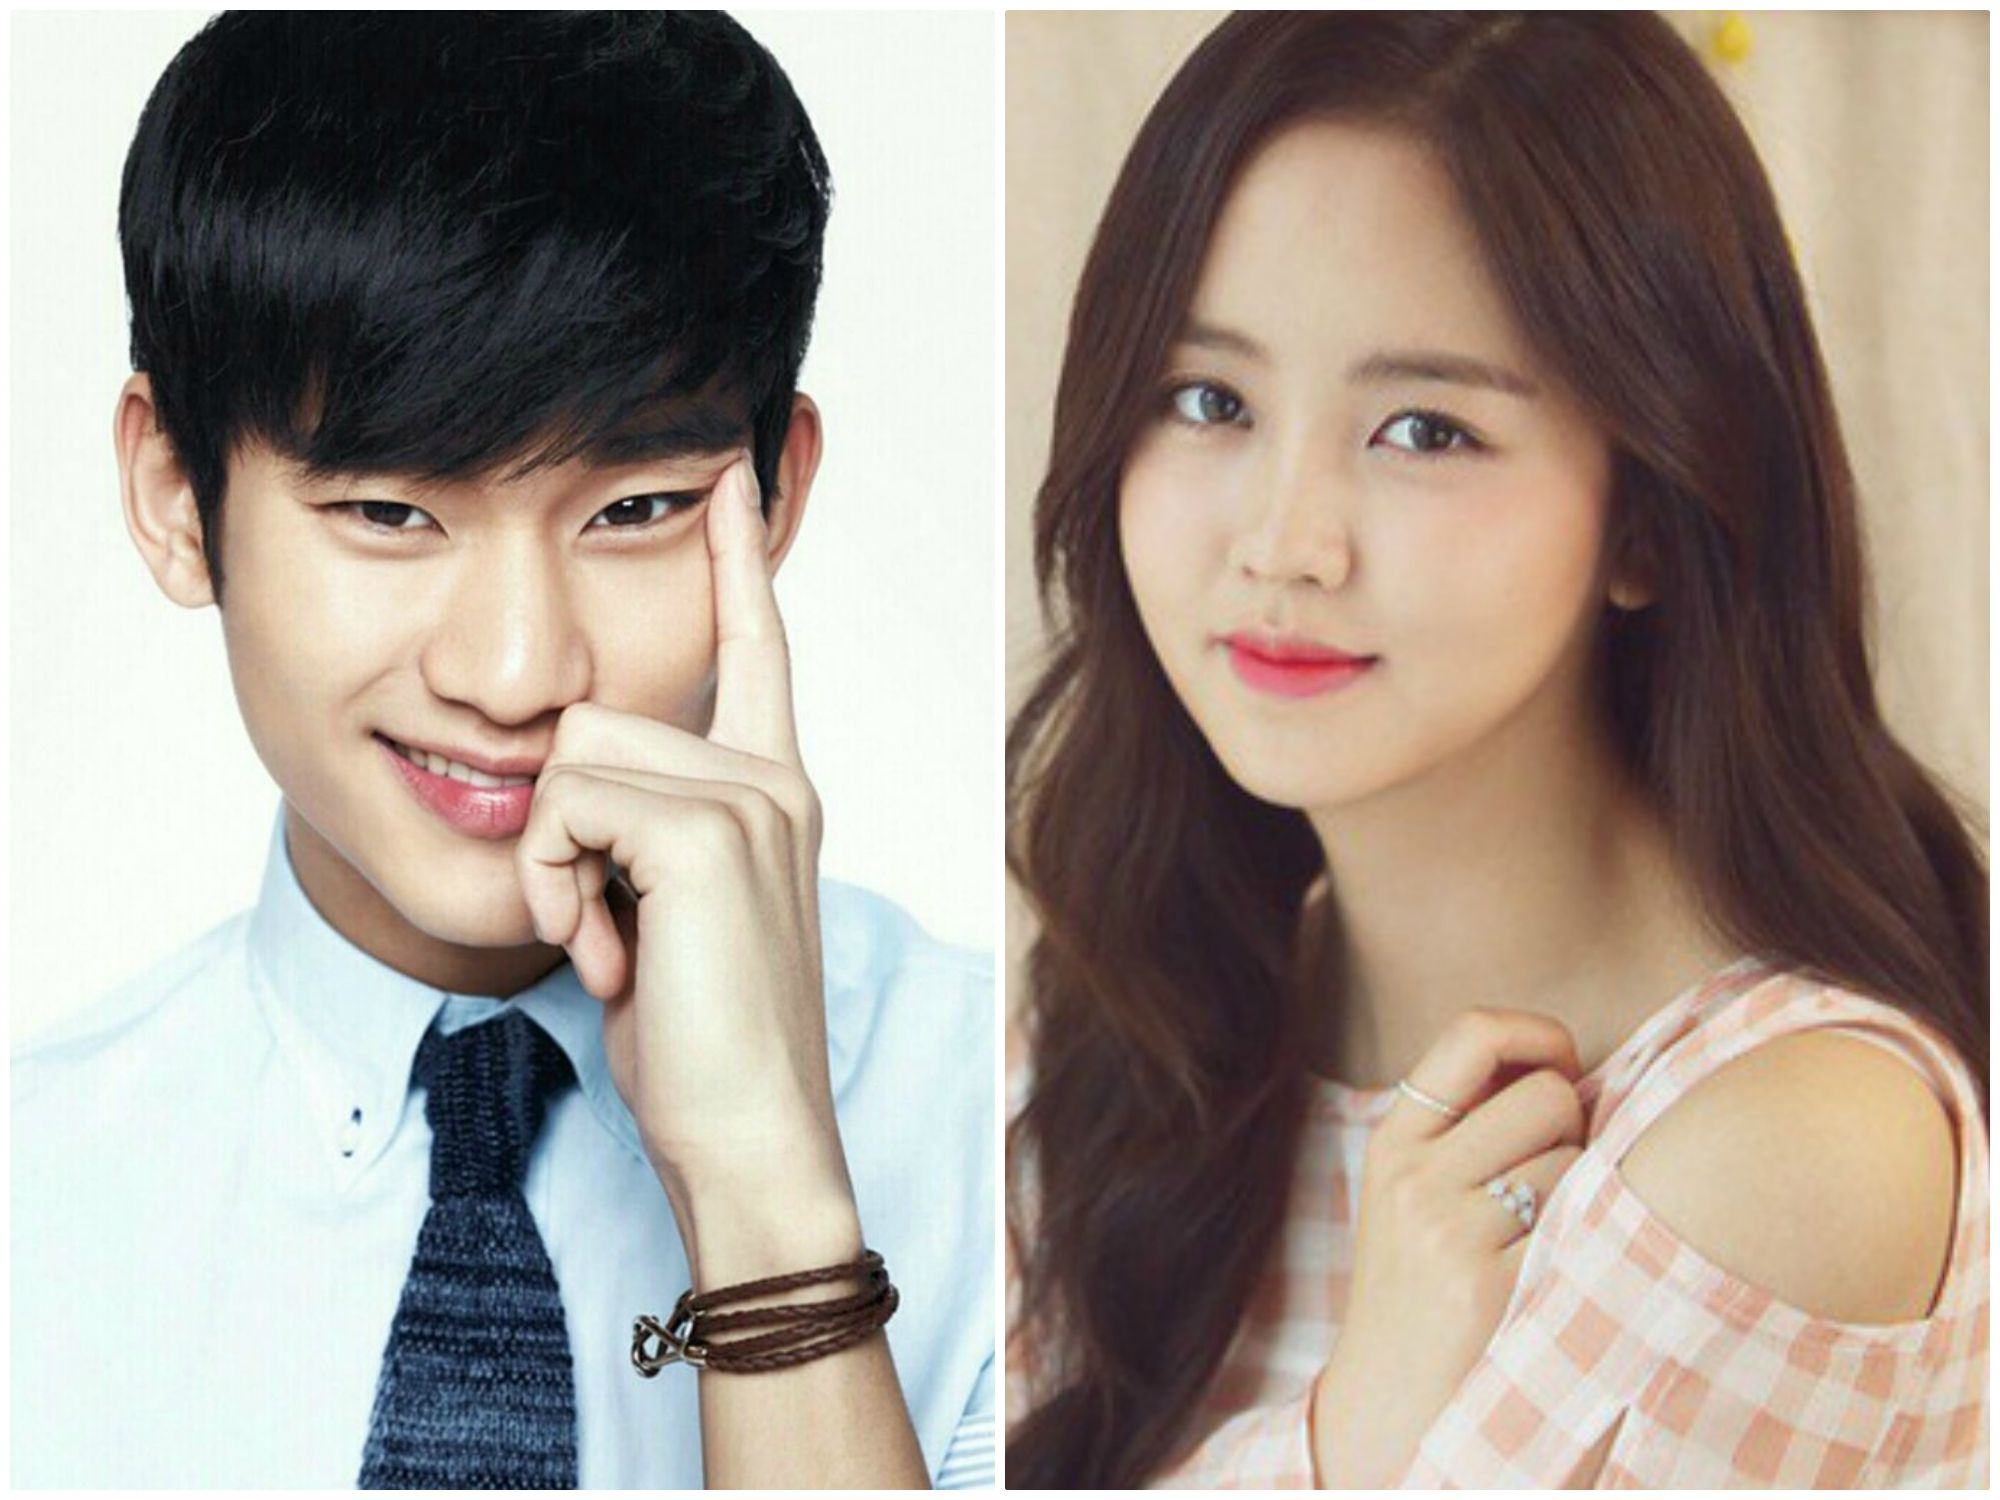 Did you get the names of actress Kim So Hyun and actor Kim Soo Hyun confused?